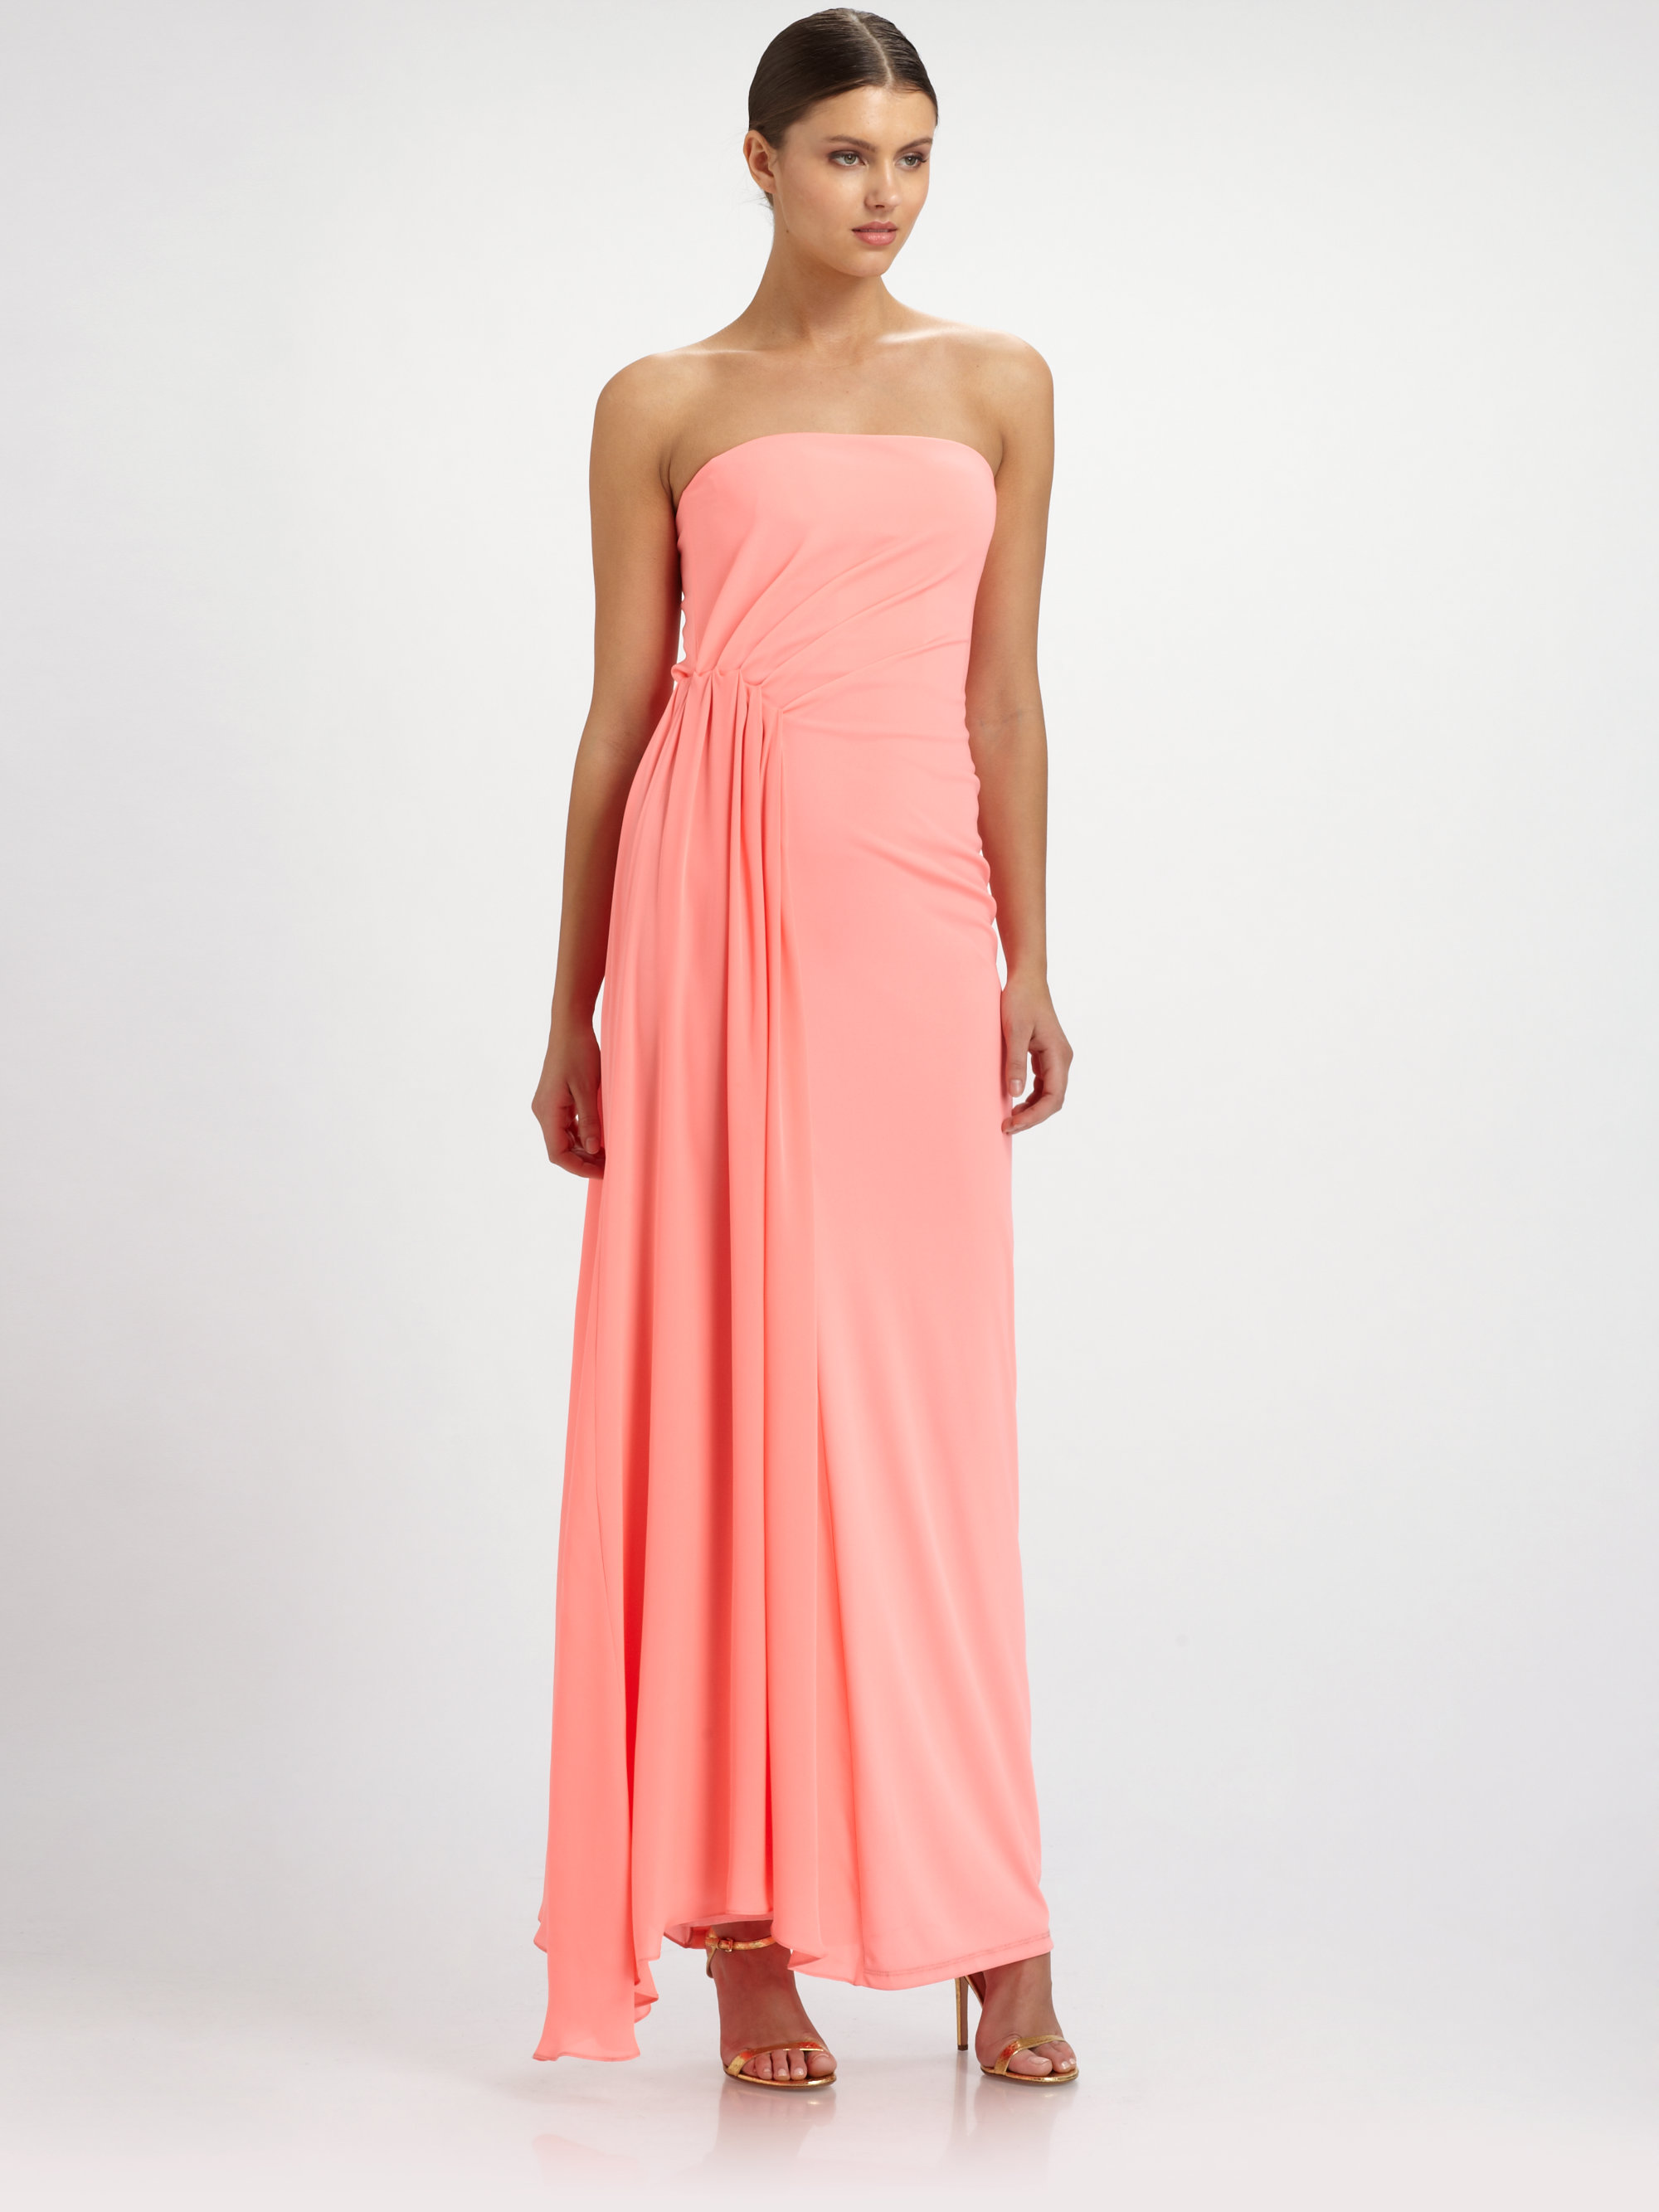 Halston ruched strapless dress in pink lyst gallery ombrellifo Images